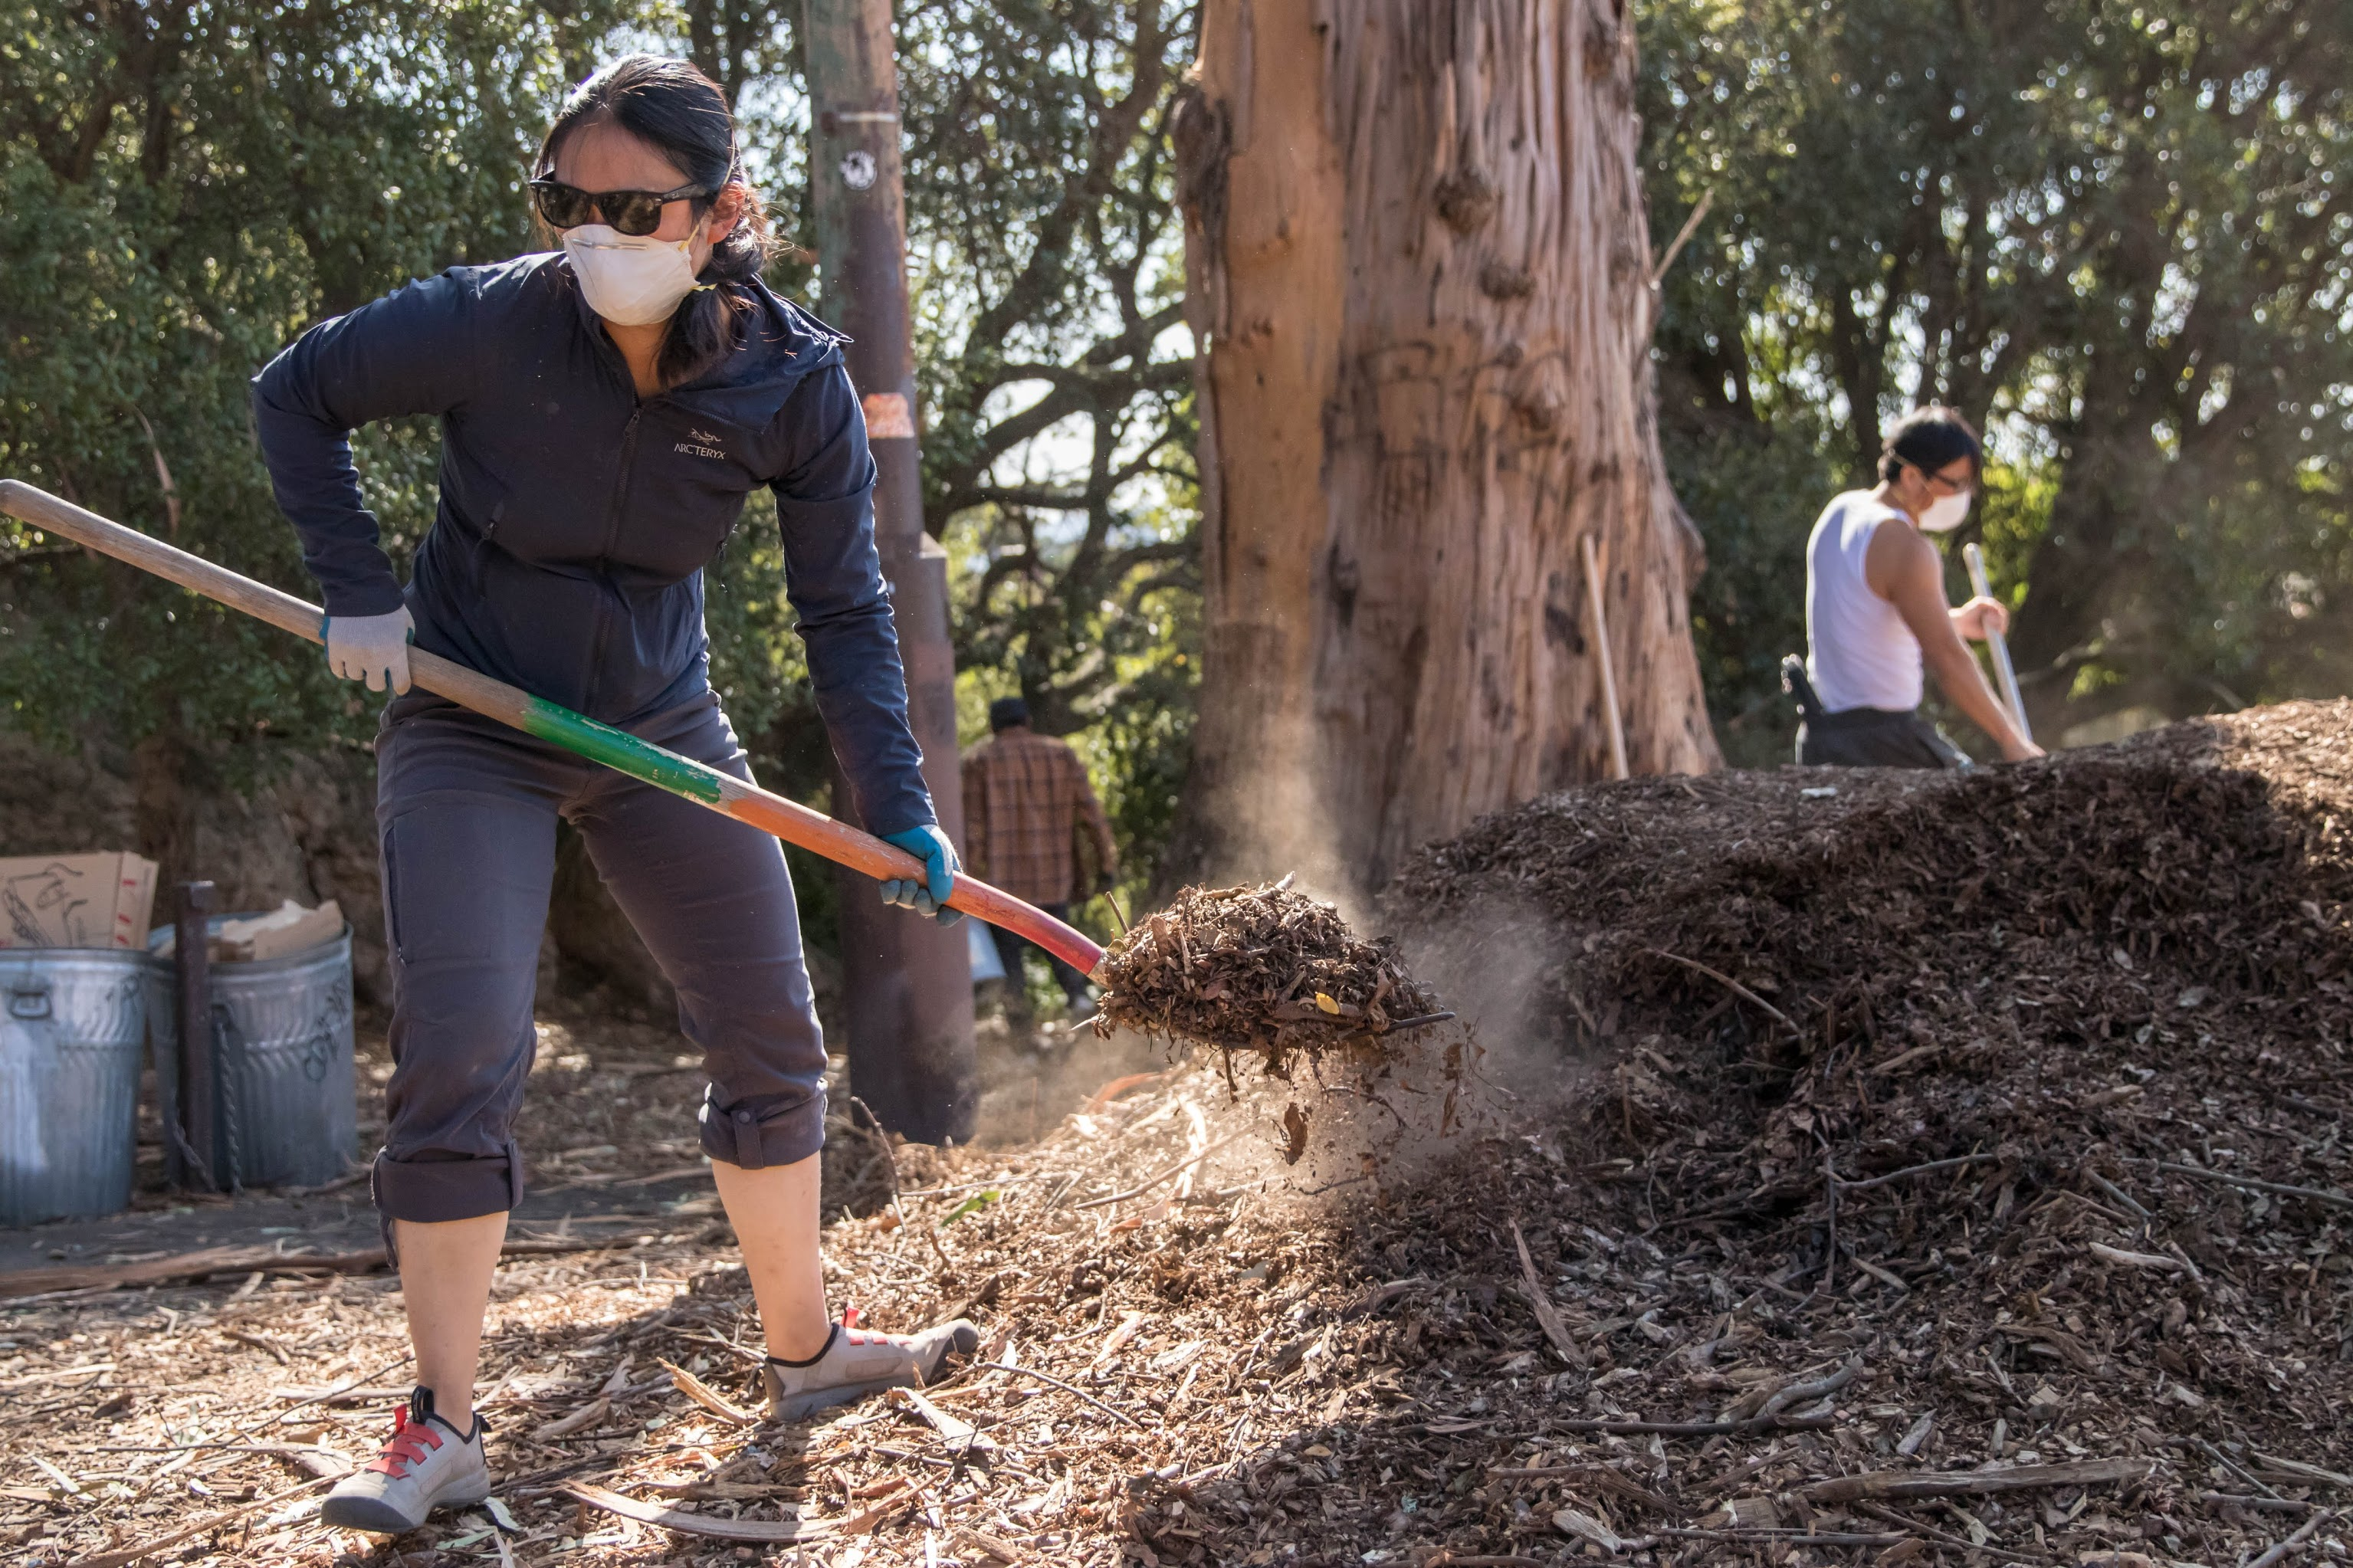 A woman shoveling wood chips while wearing a filtration mask